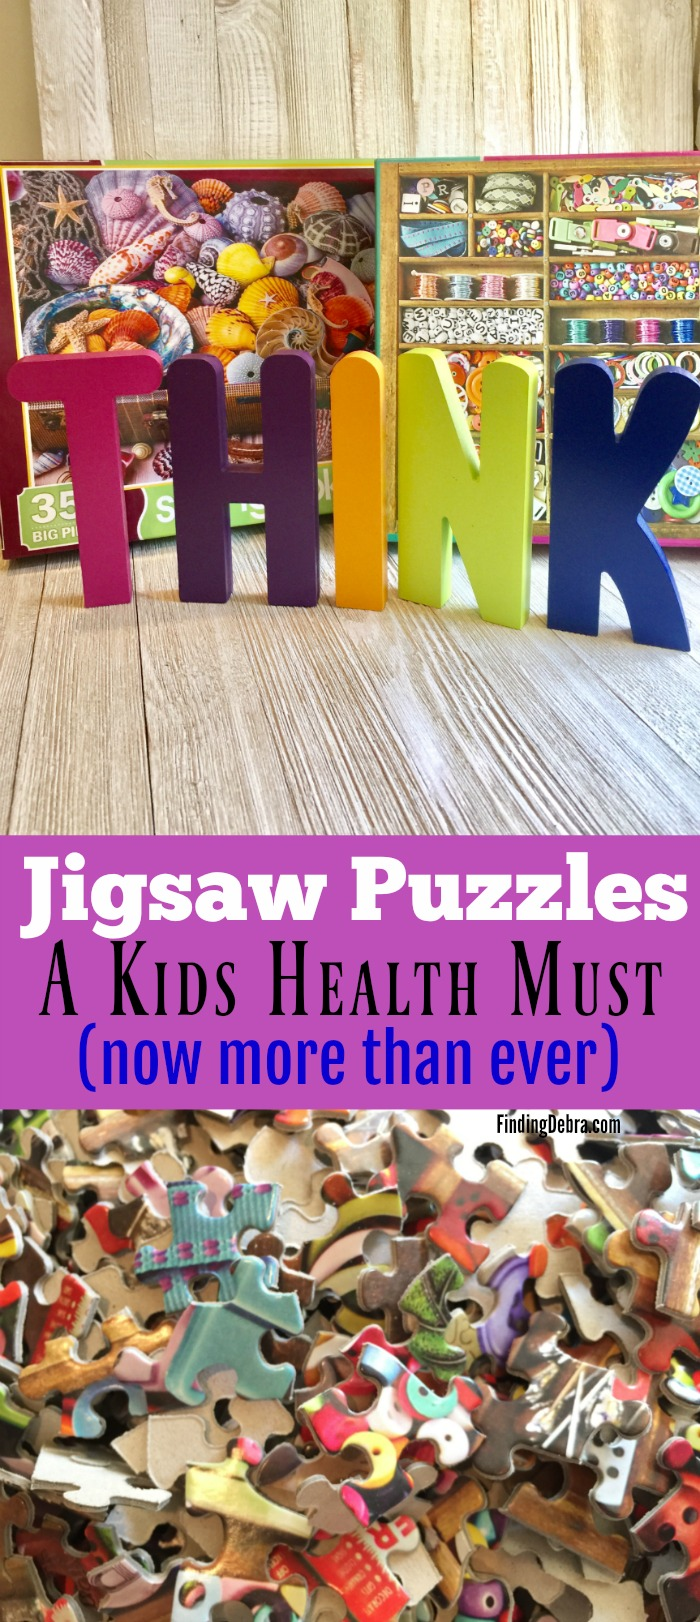 Jigsaw Puzzles A Kids Health Must